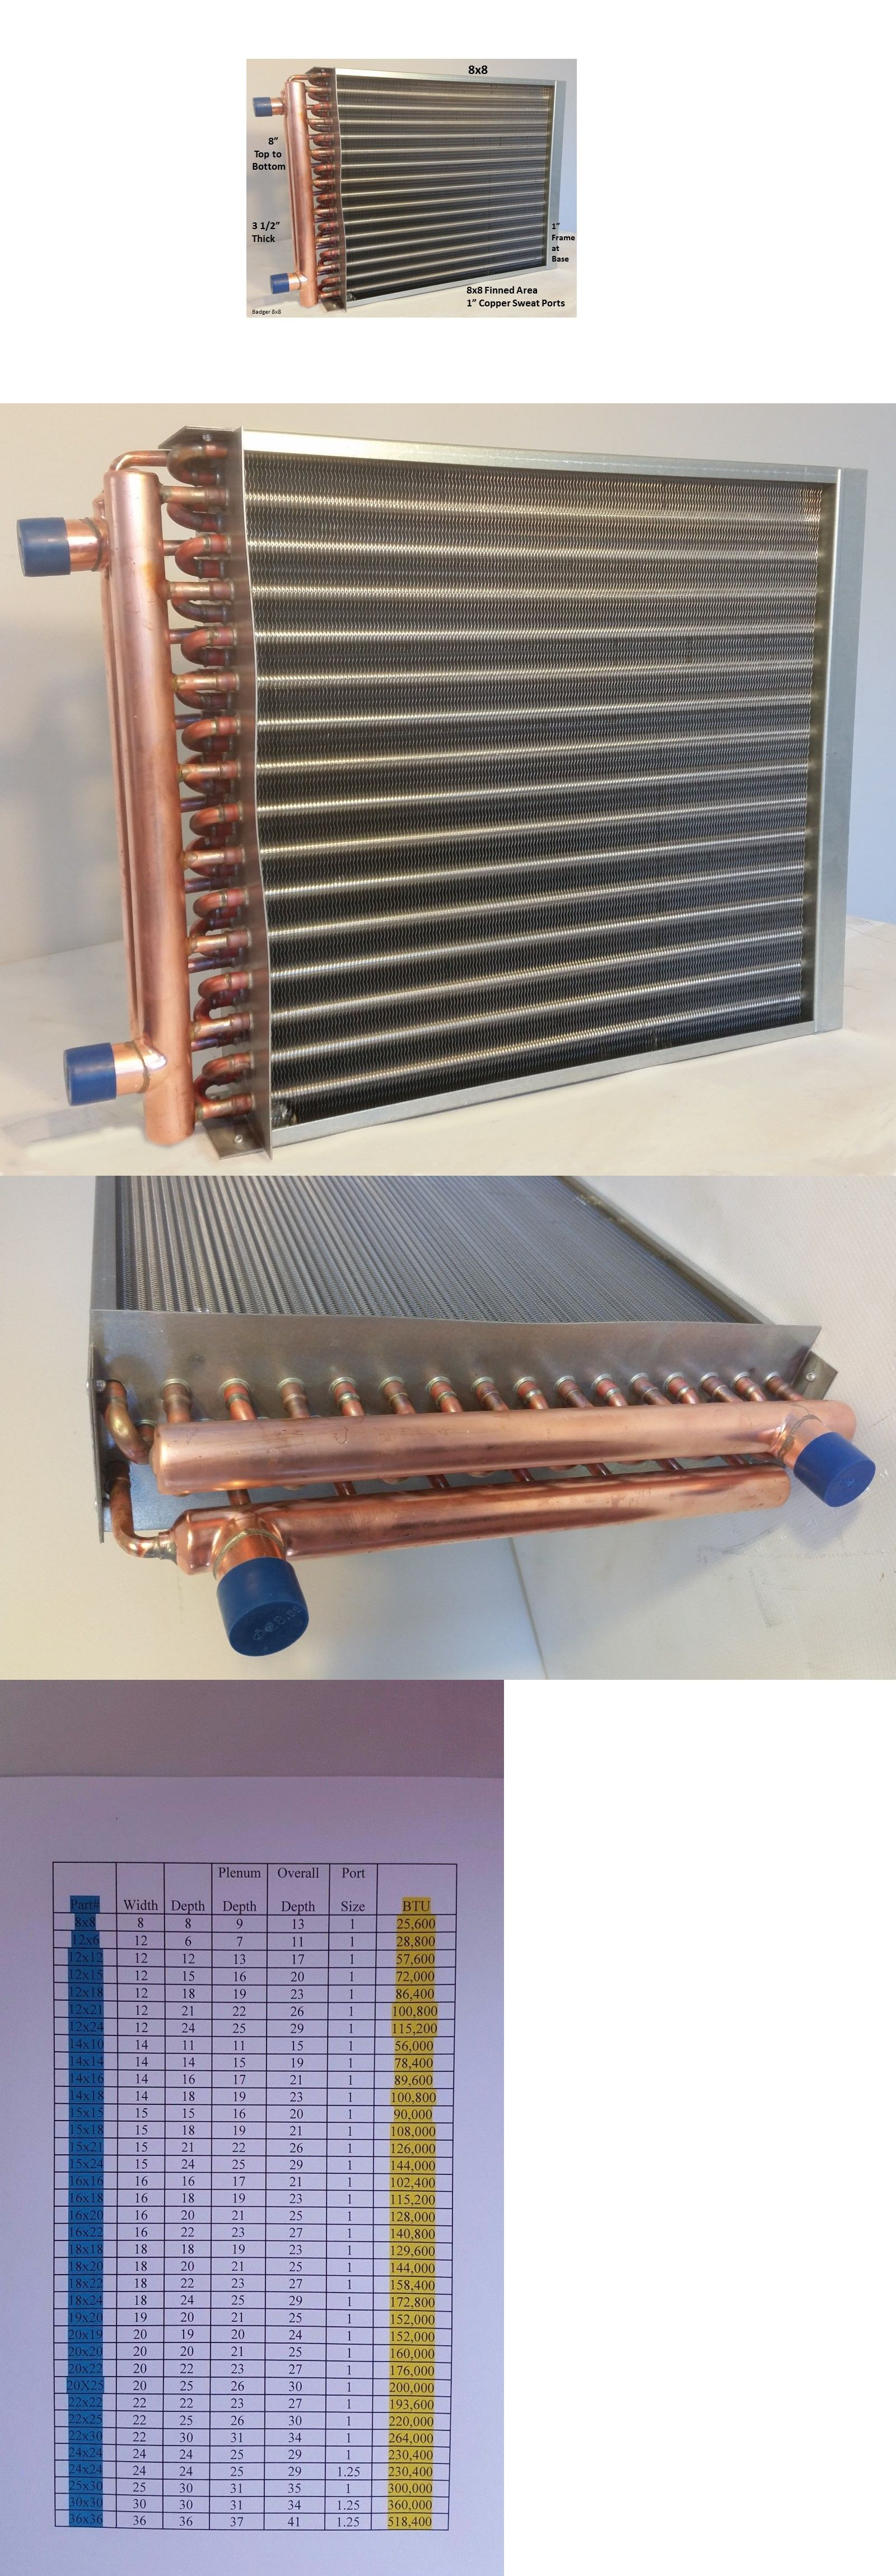 Pin on Air Conditioners and Heaters 185107